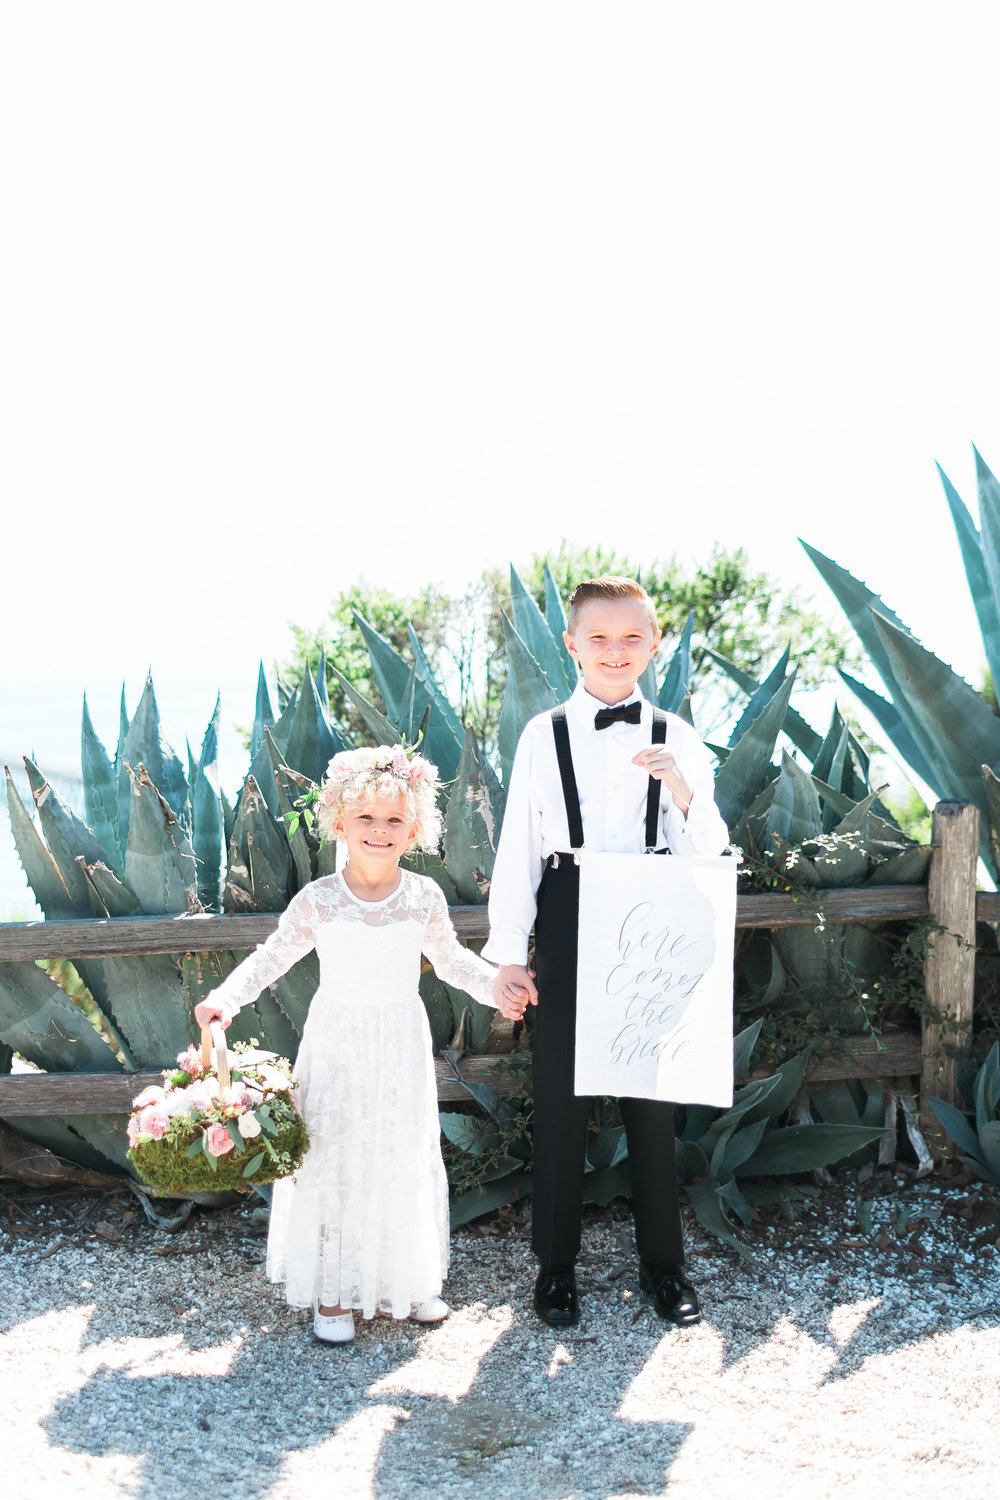 Adorable kids at wedding. Flower girl and ring bearer.    Destination Wedding Planner  ANDREA EPPOLITO EVENTS  · Images by  J.ANNE P  HOTOOGRAPHY  · Video  HOO FILMS  · Venue Ritz Carlton Bacara Santa Barbara ·Gown MONIQUE LHULLIER ·Bridesmaids Dresses  SHOW ME YOUR MUMU ·Stationery  SHE PAPERIE ·Bride's Shoes  BADGLEY MISCHKA ·Hair and Makeup  TEAM HAIR AND MAKEUP · Floral  BLUE MAGNOLIA ·Linen  LA TAVOLA ·Decor Rentals  TENT MERCHANT ·Calligraphy  EBB ·Lighting  FIVE STAR AV ·Ice Cream Station  MCCONNELL'S ICE CREAM